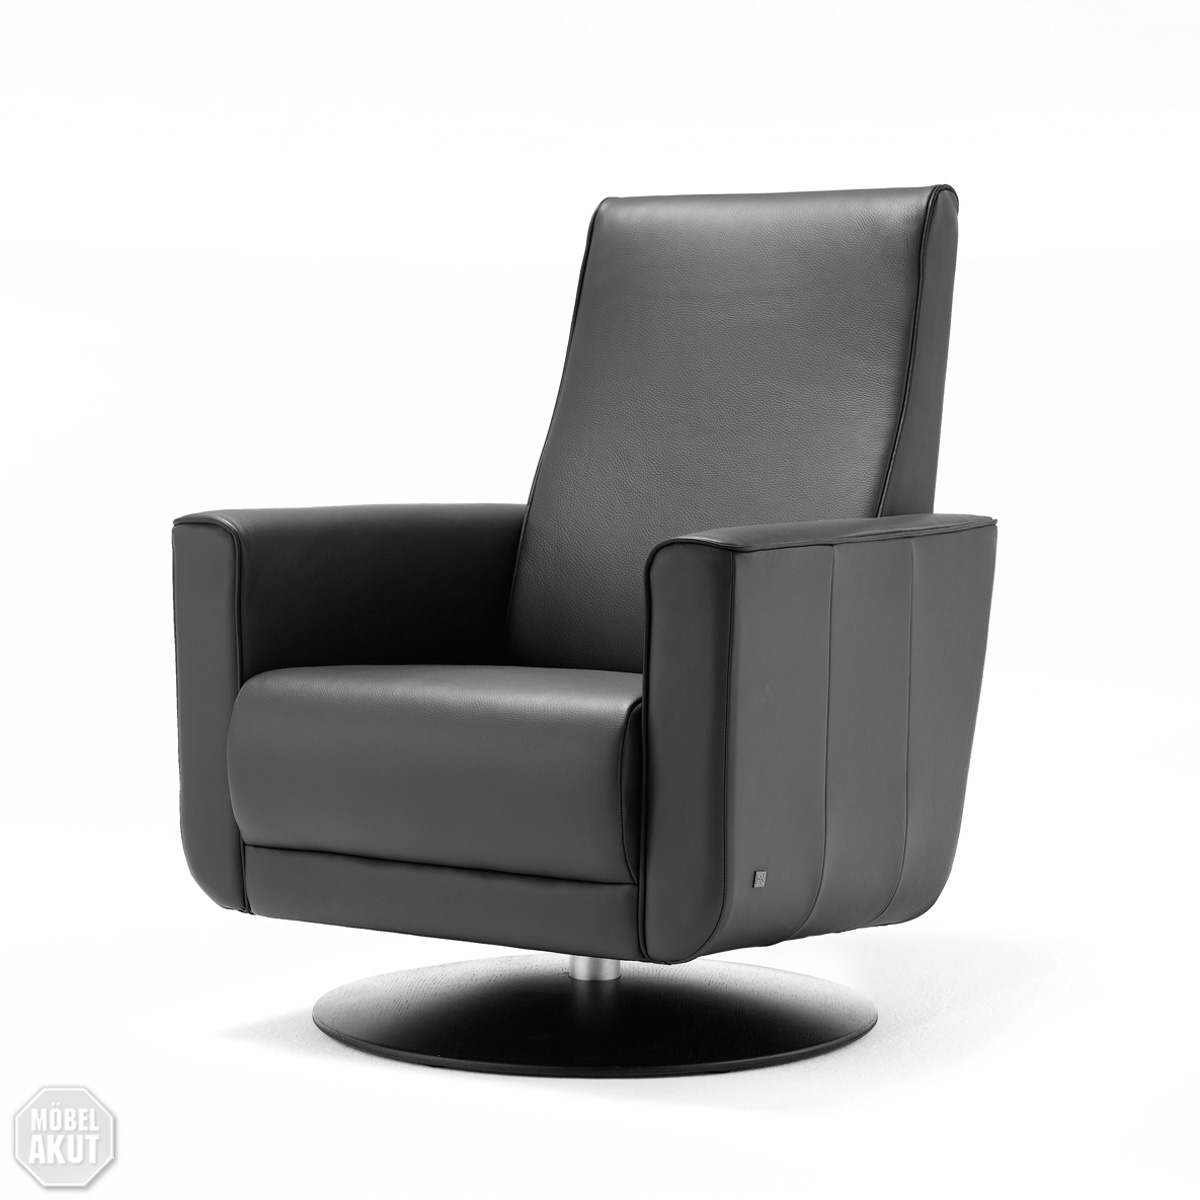 Wohnzimmer Sessel Rolf Benz Orginal Quotrolf Benz Quot Sessel Quothse 305 Quot In Nappa Leder